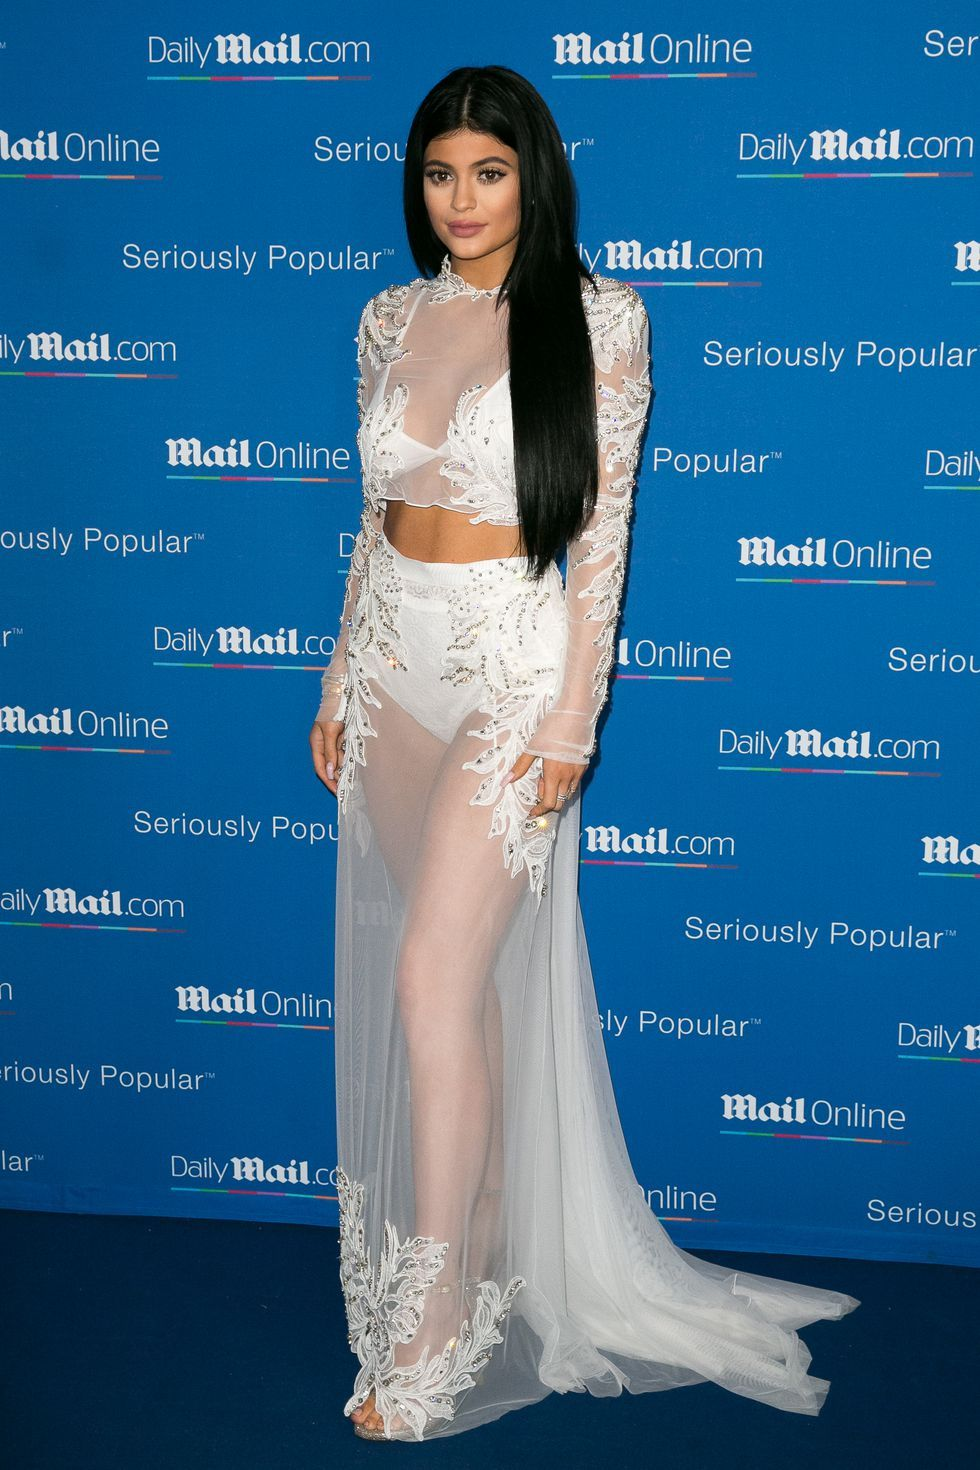 a436818070d Witness Kylie Jenner s Glorious Style Transformation In 62 Photos ...